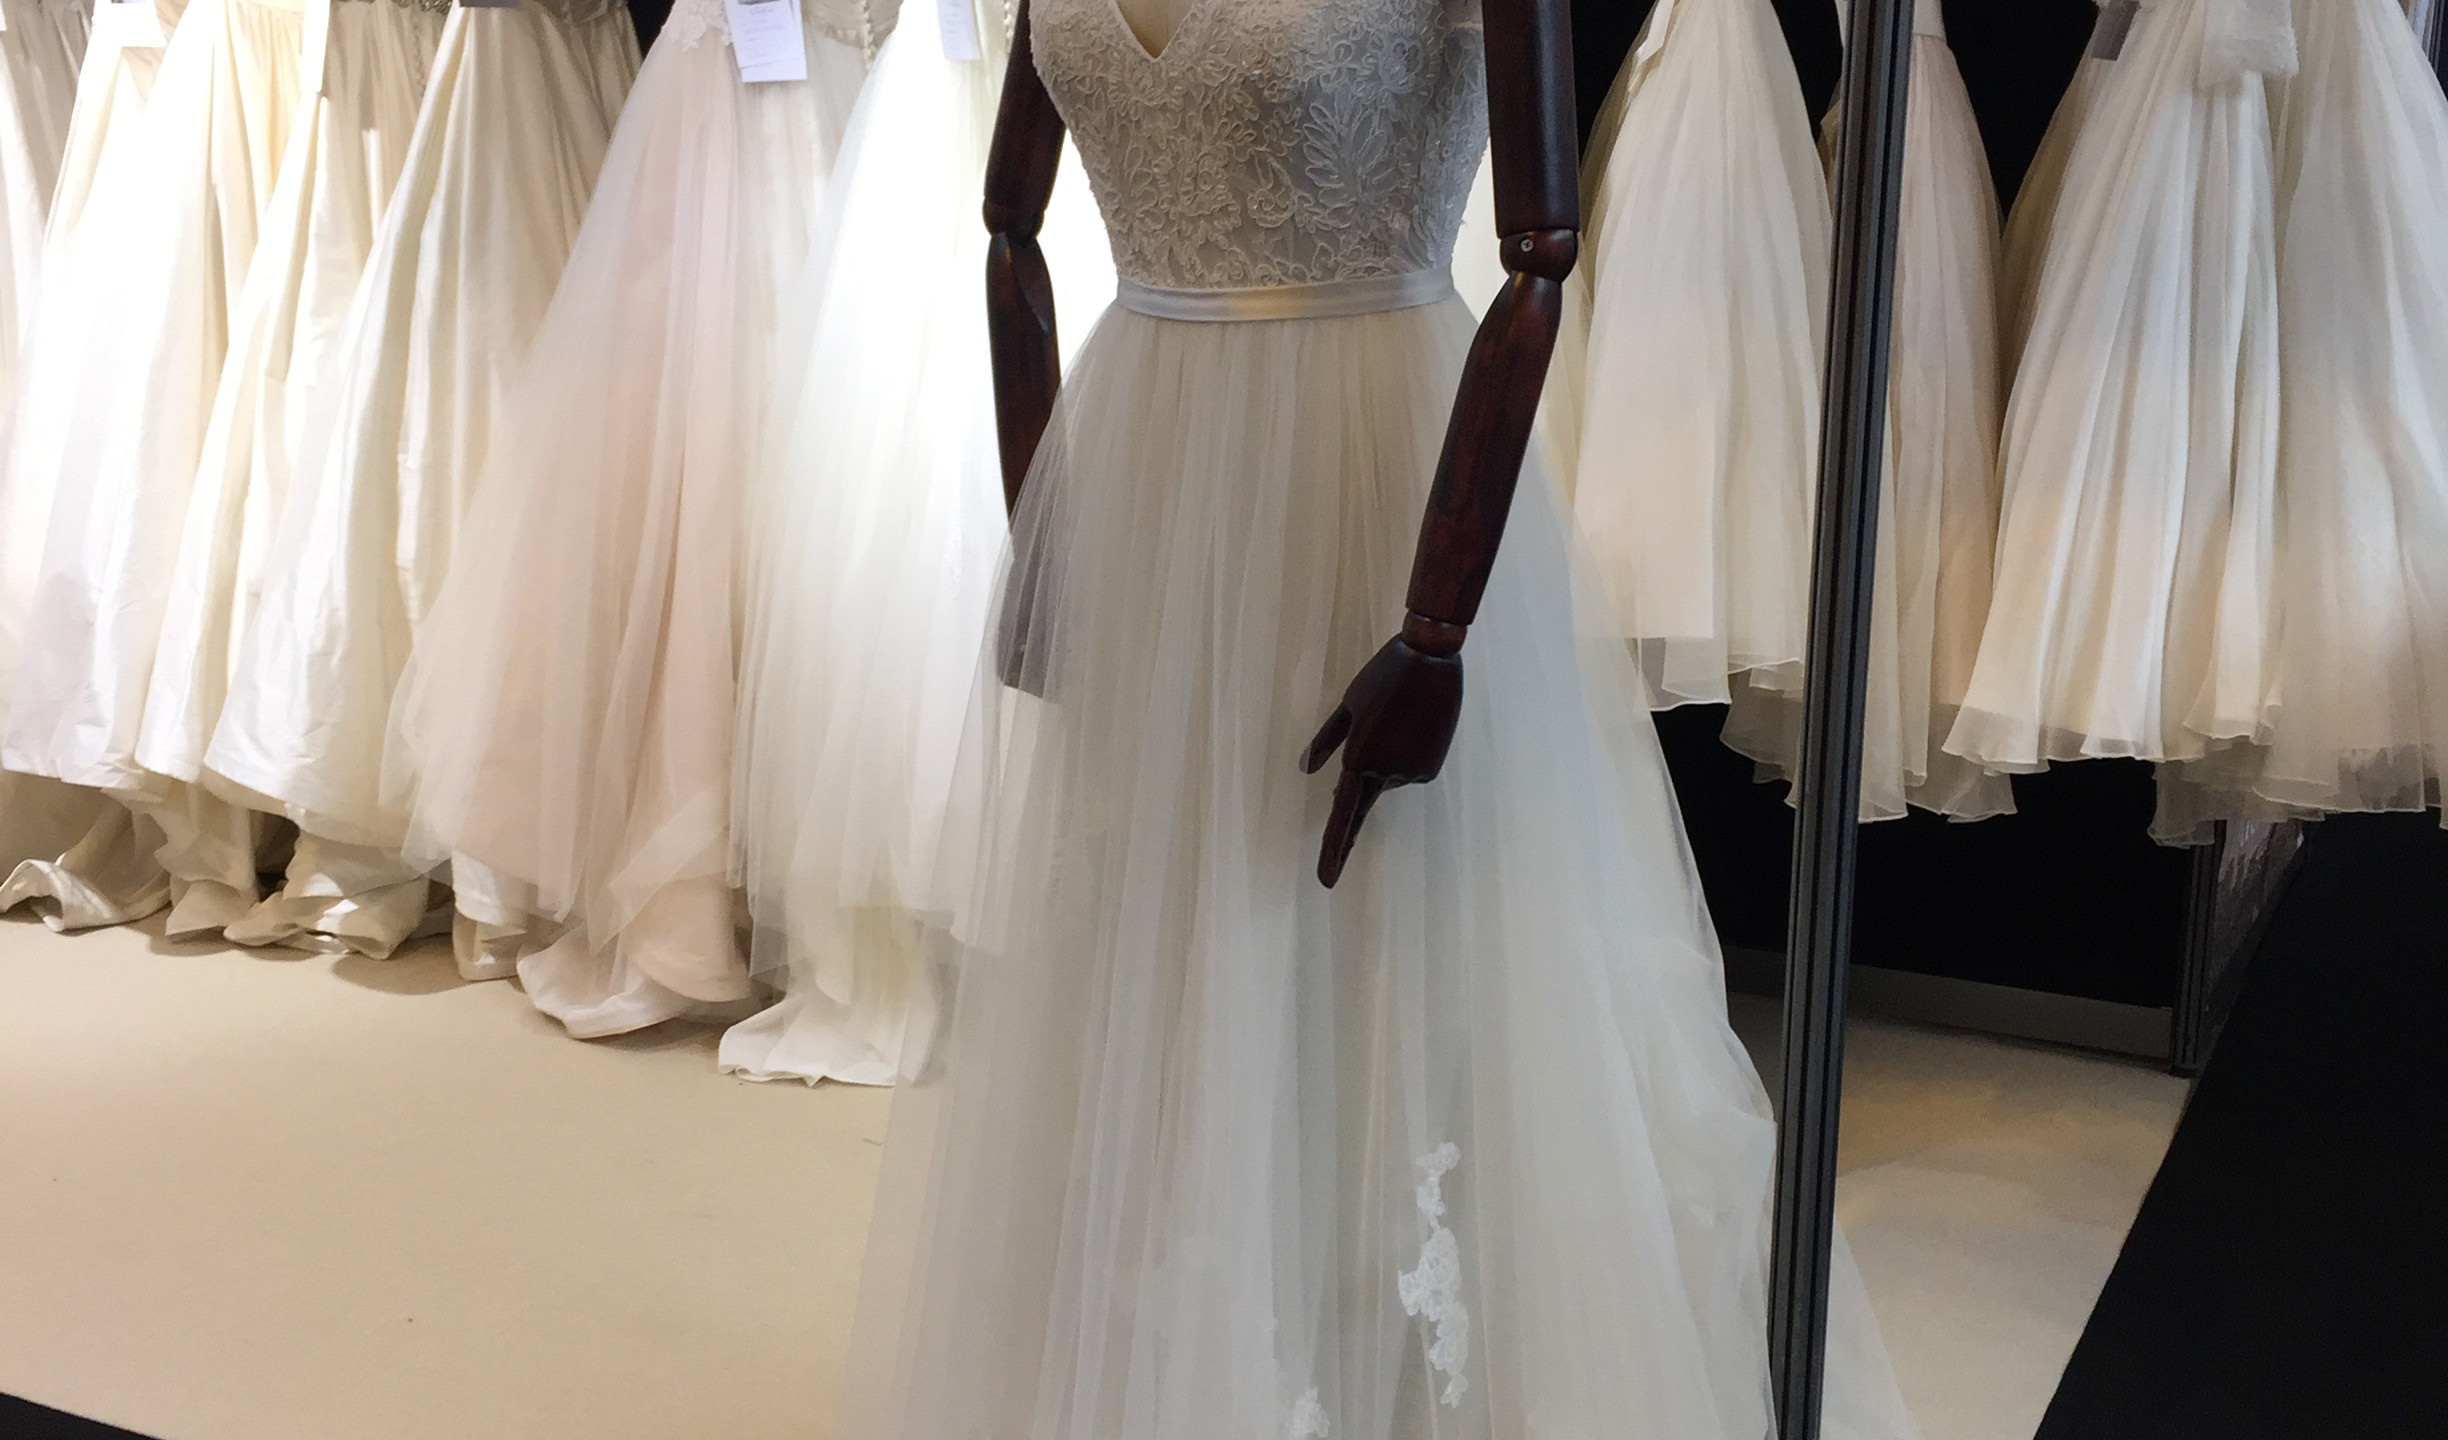 Love the wooden arms - makes the dress look balletic as well